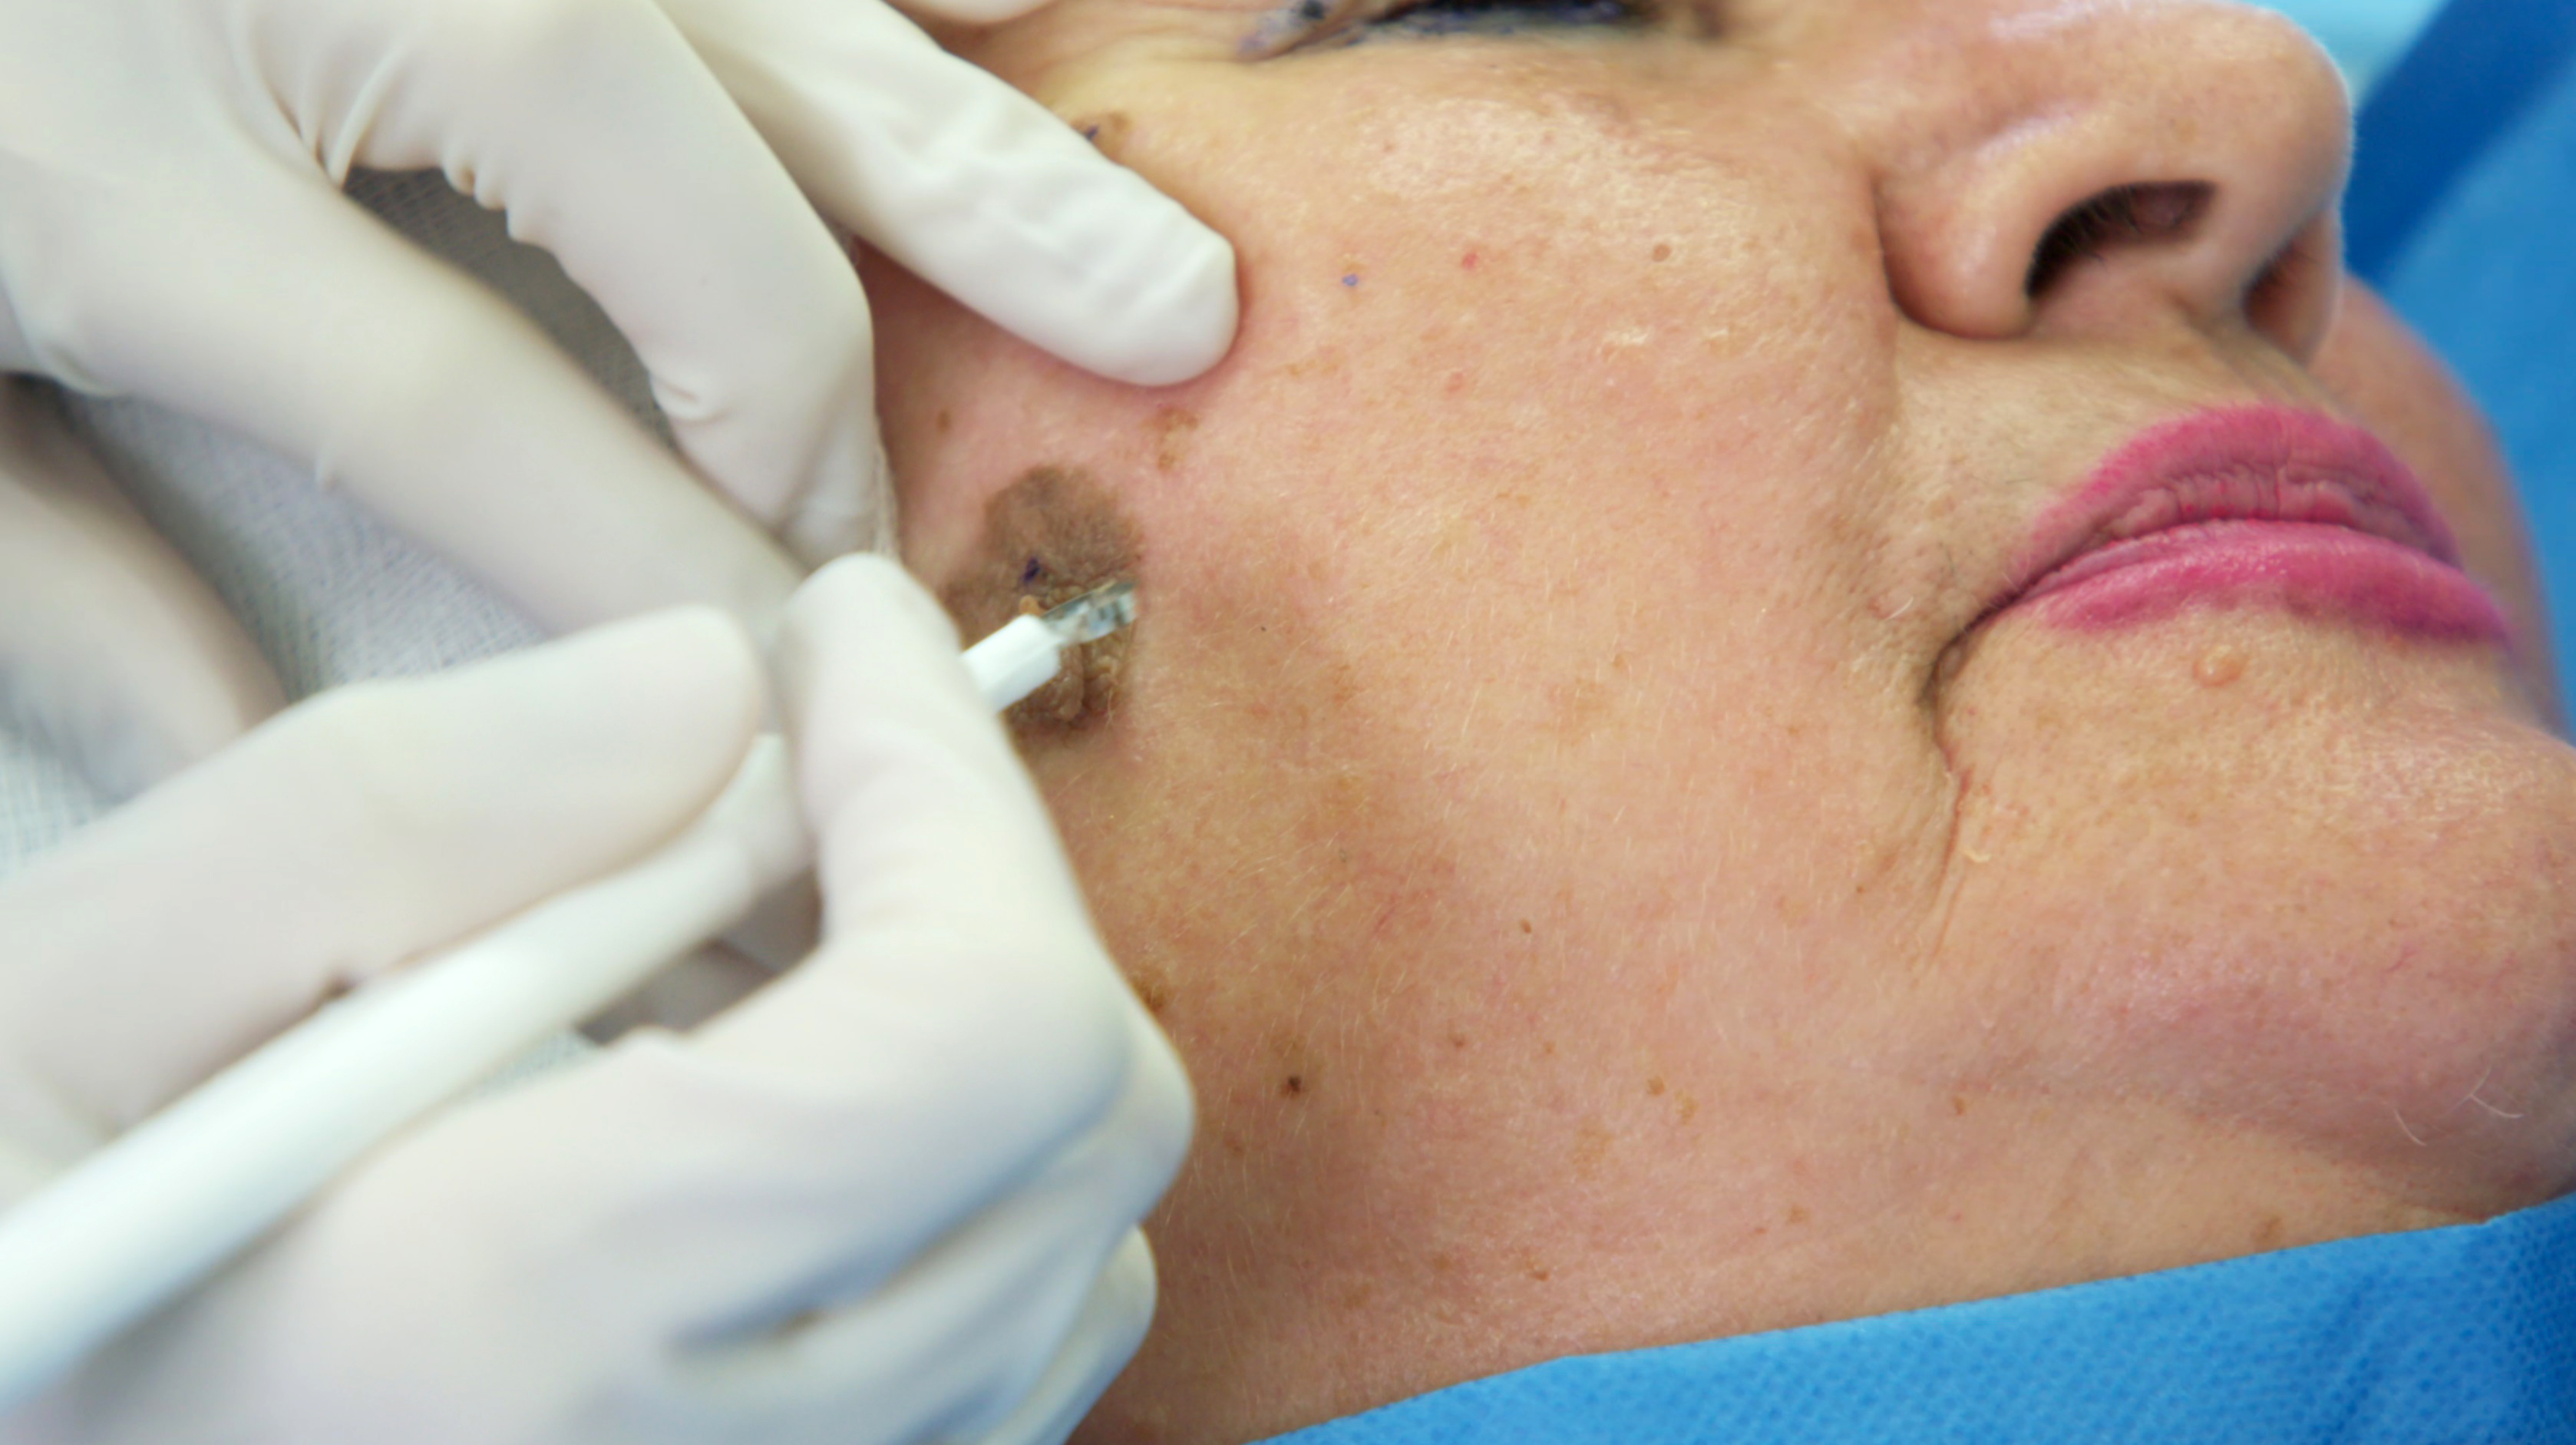 warts on skin in old age hpv treatment no warts